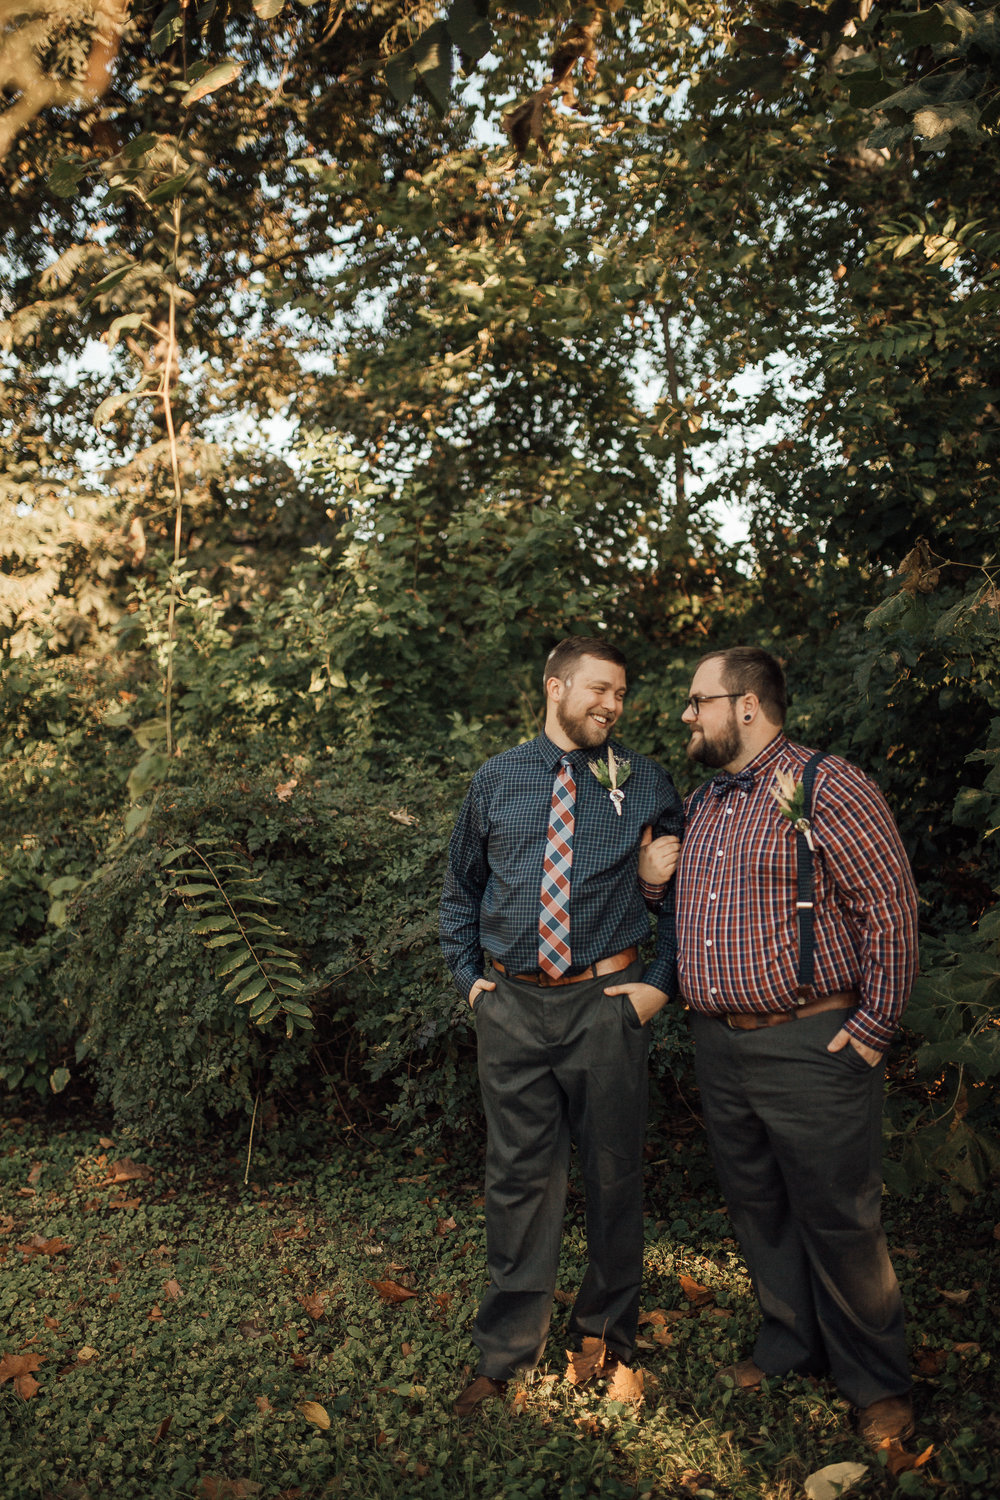 cassie-cook-photography-memphis-made-wedding-venue-memphis-wedding-robbie-casey